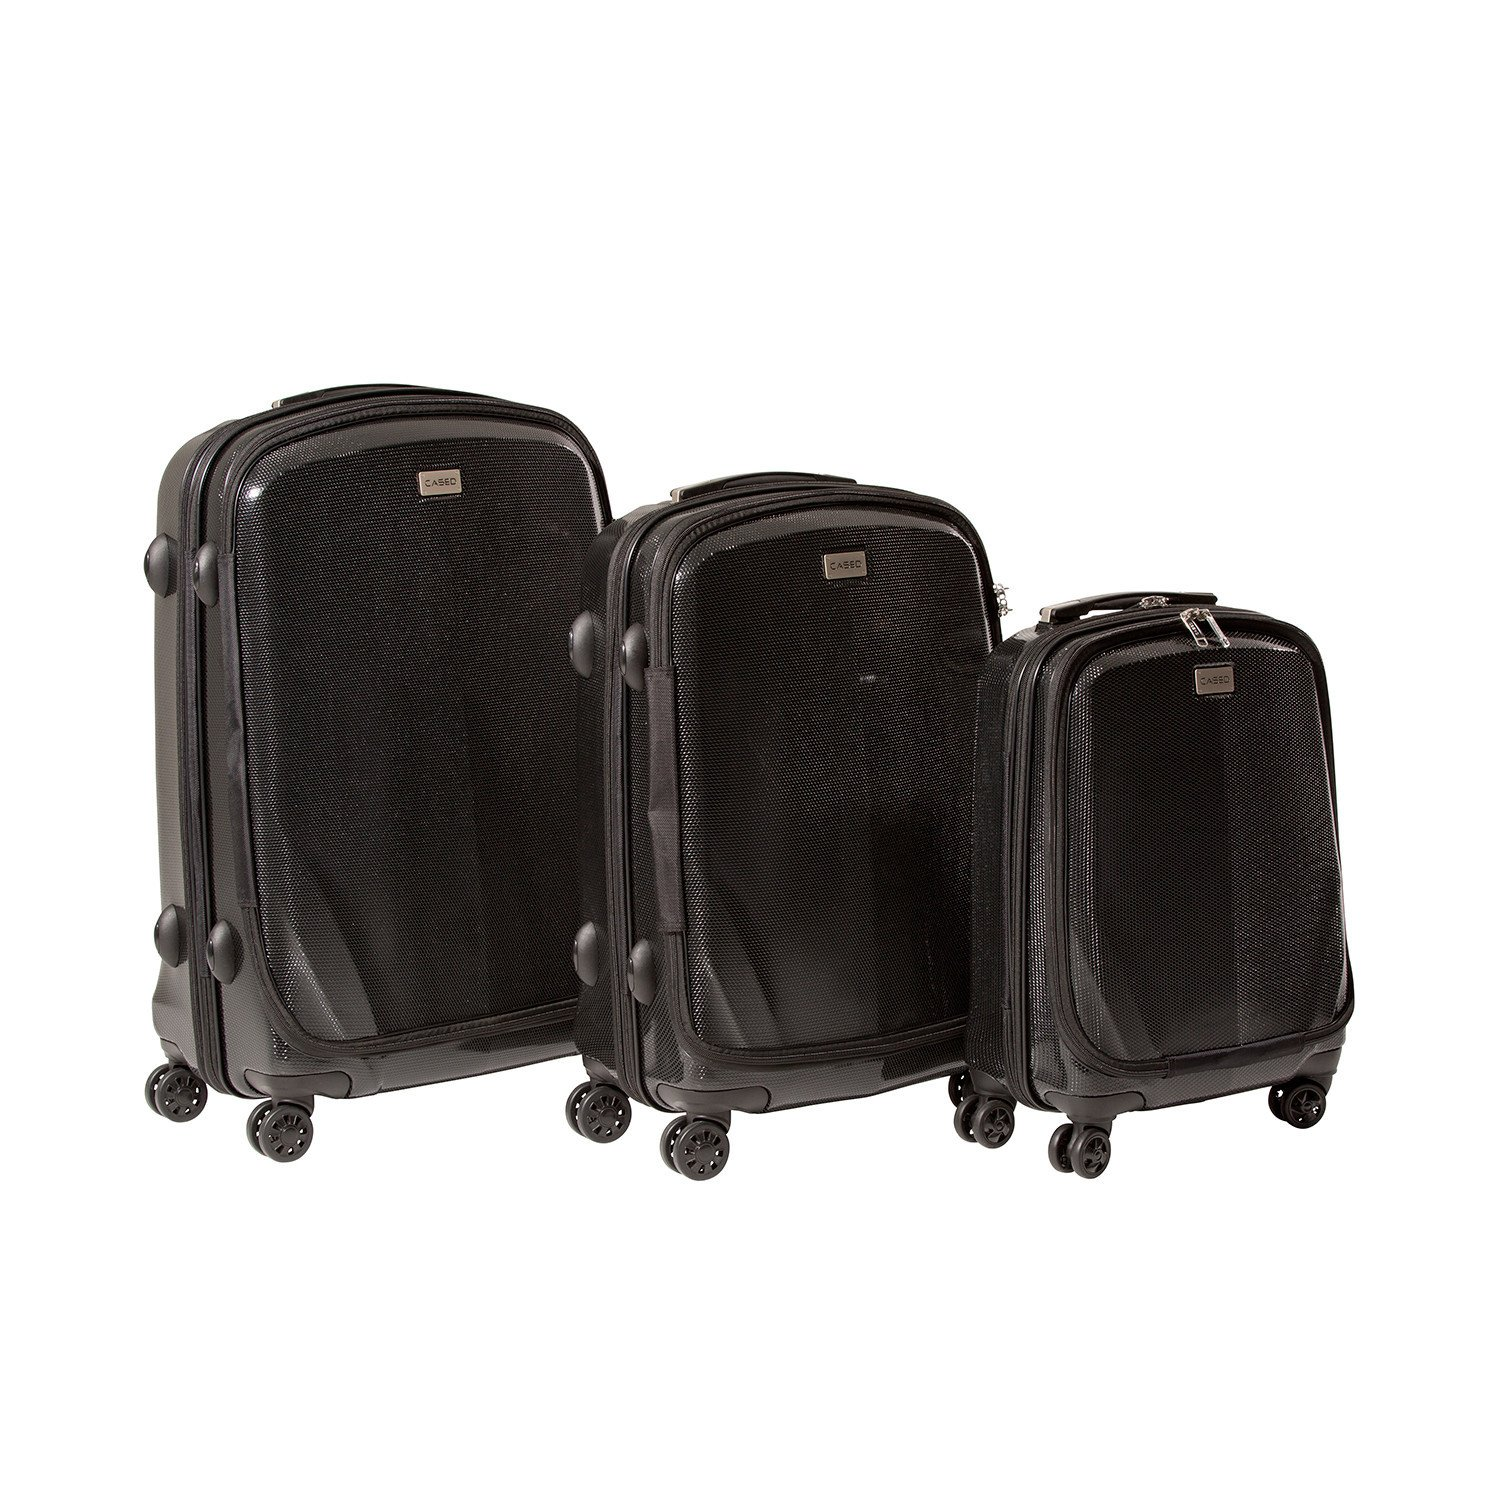 CASED One - 22'', 26'', and 30'' Hard Case Luggage (Set of 3) (22'', 26'' & 30'', Black) by CASED Luggage